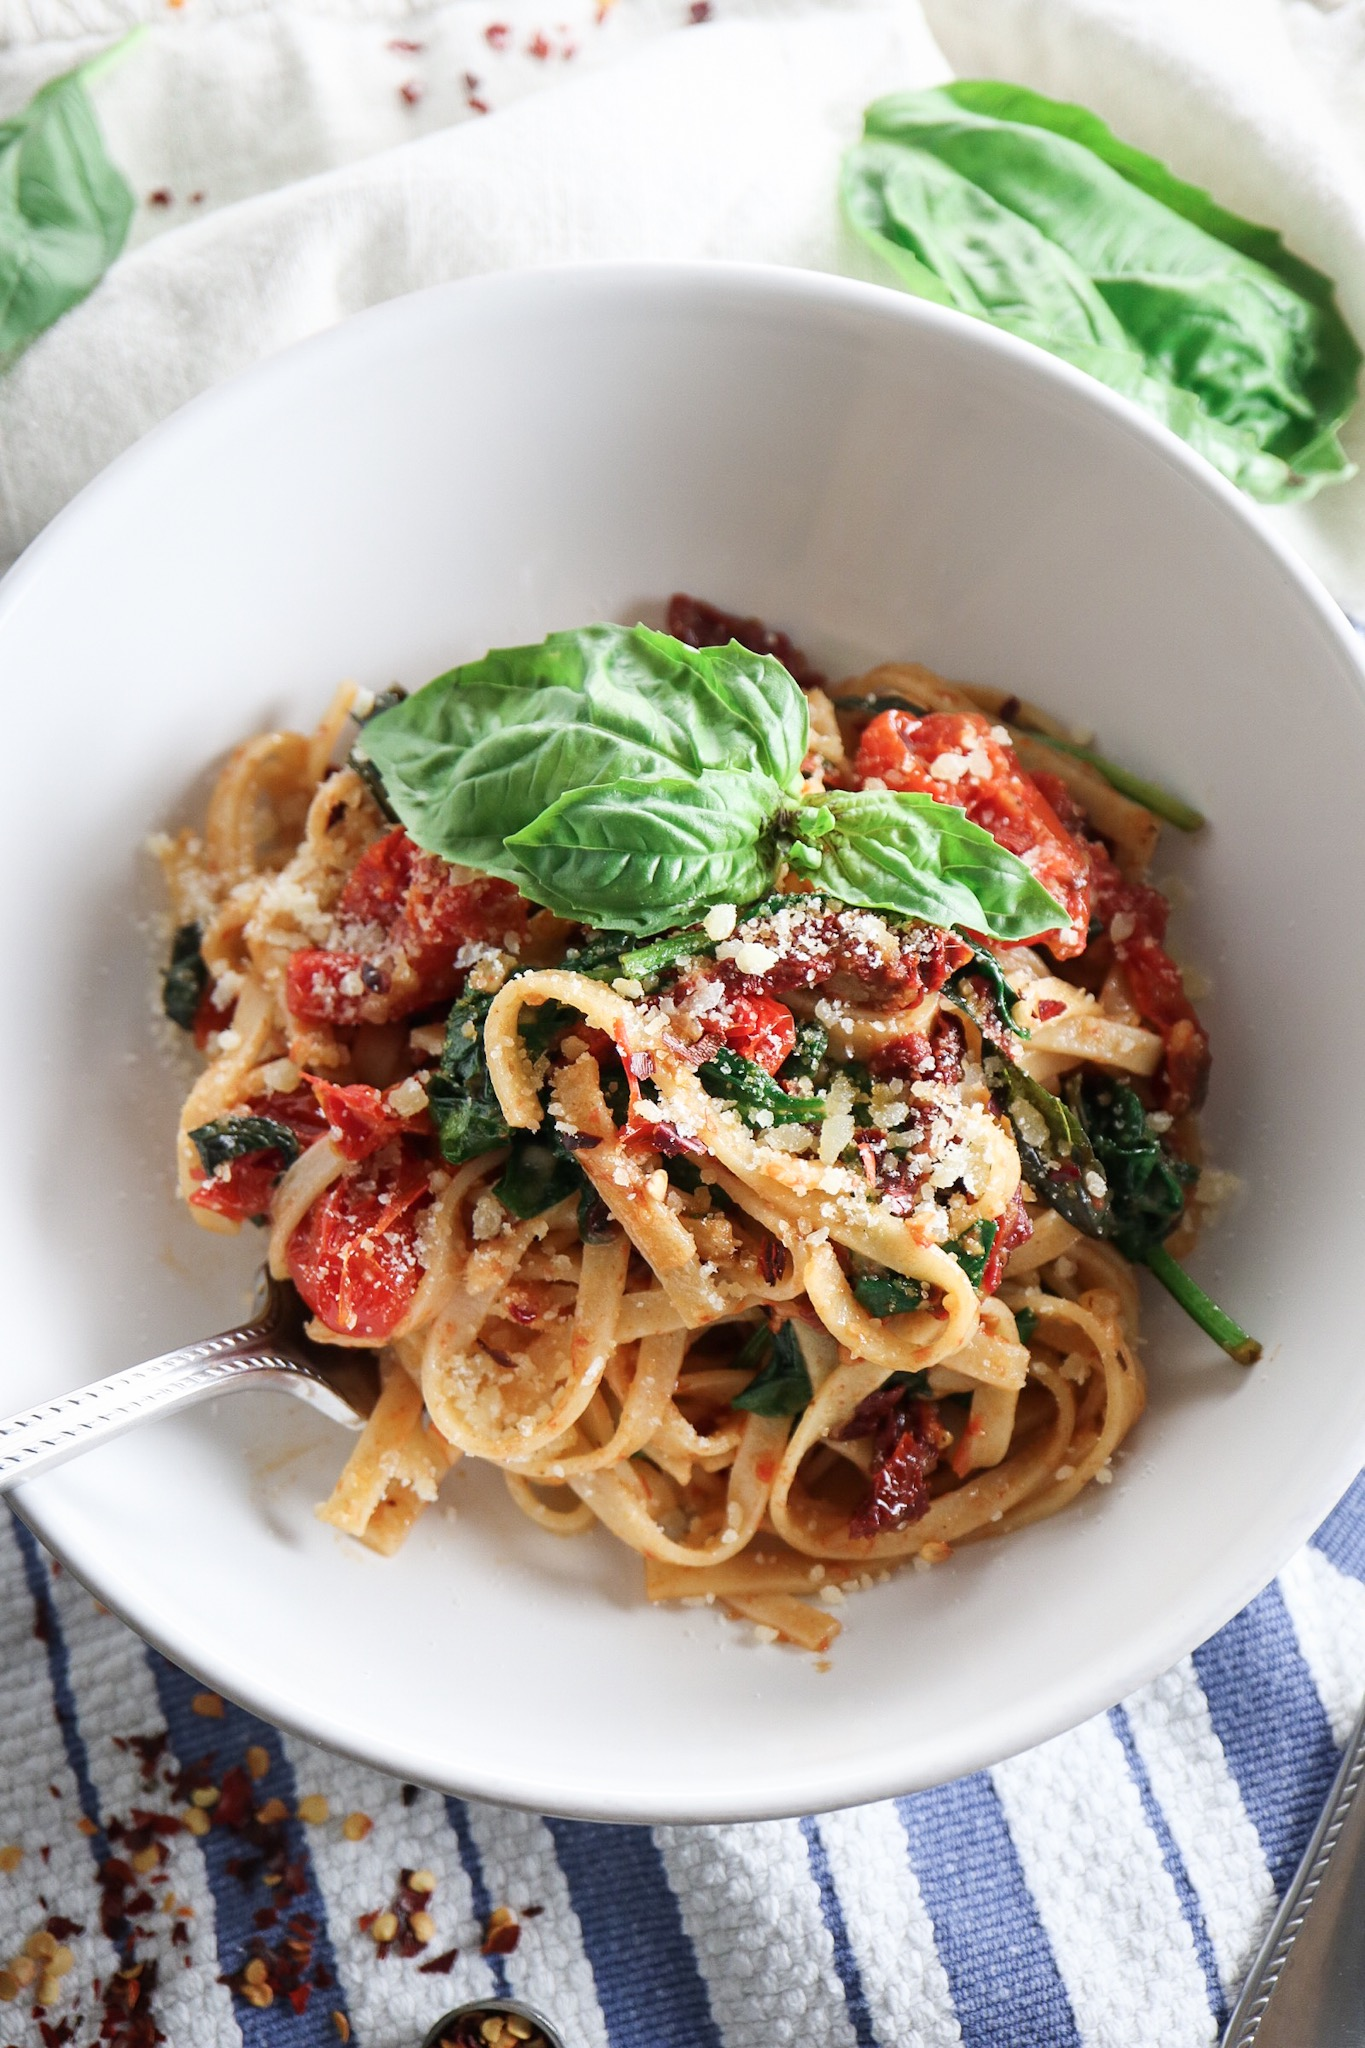 Spicy Tomato and Spinach Linguine